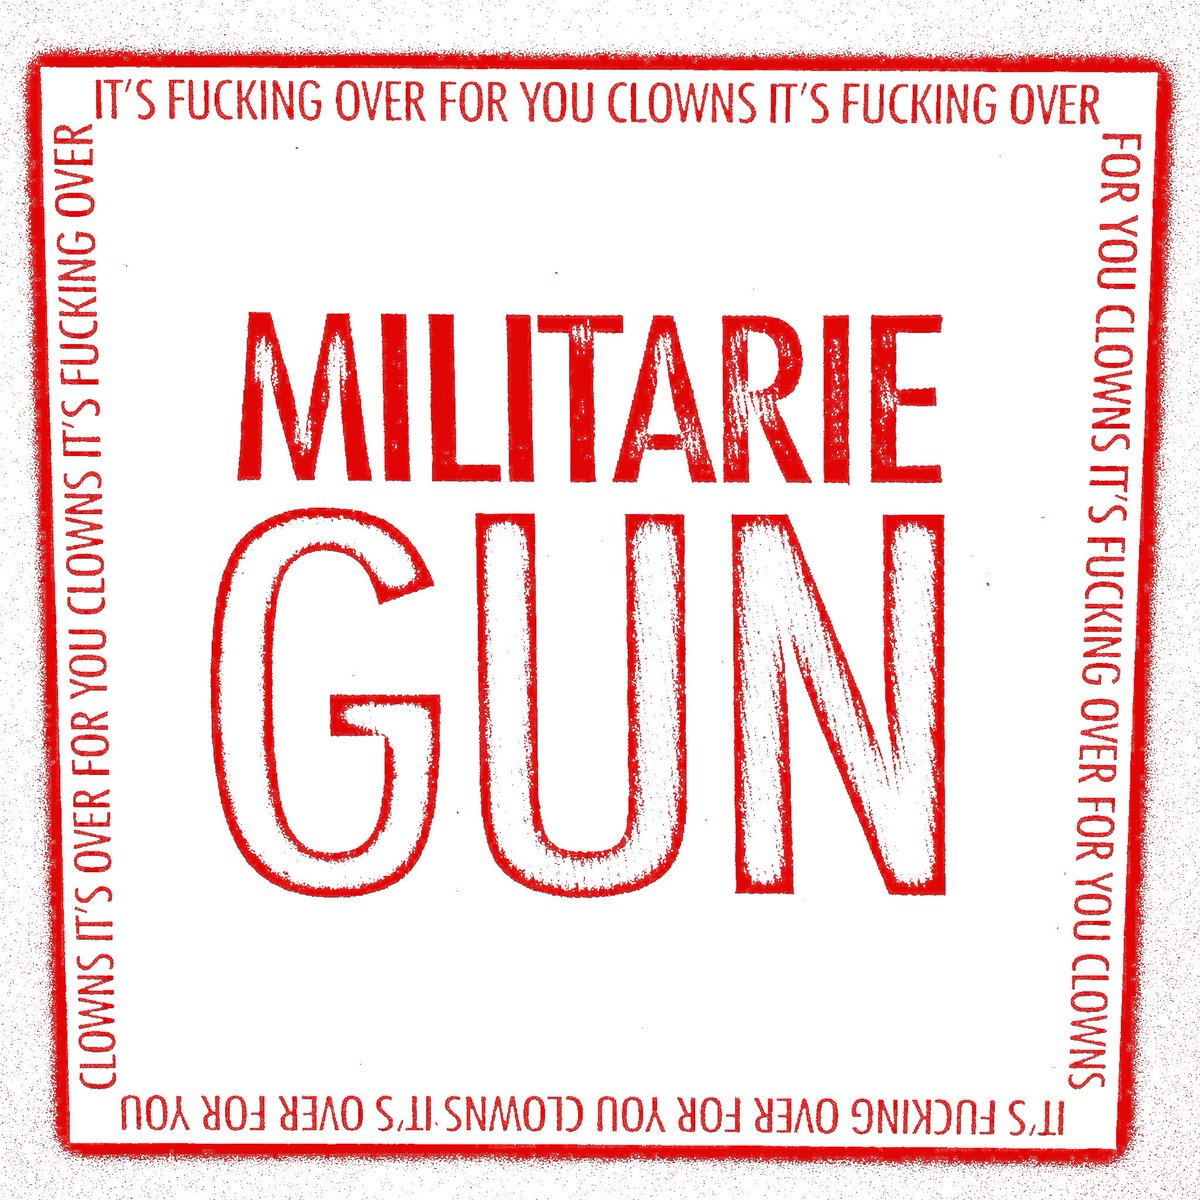 MILITARIE GUN DEMO UP NOW FFO AGGRESSIVE ROCK MUSIC INSTRUMENTS AND VOCALS BY IAN SHELTON ENGINEERED AND MASTERED BY NICK TOWNSEND MIXED BY KYLE MCAULAY HTTP://MILITARIEGUN.BANDCAMP.COMpic.twitter.com/mrlM1Vljjs